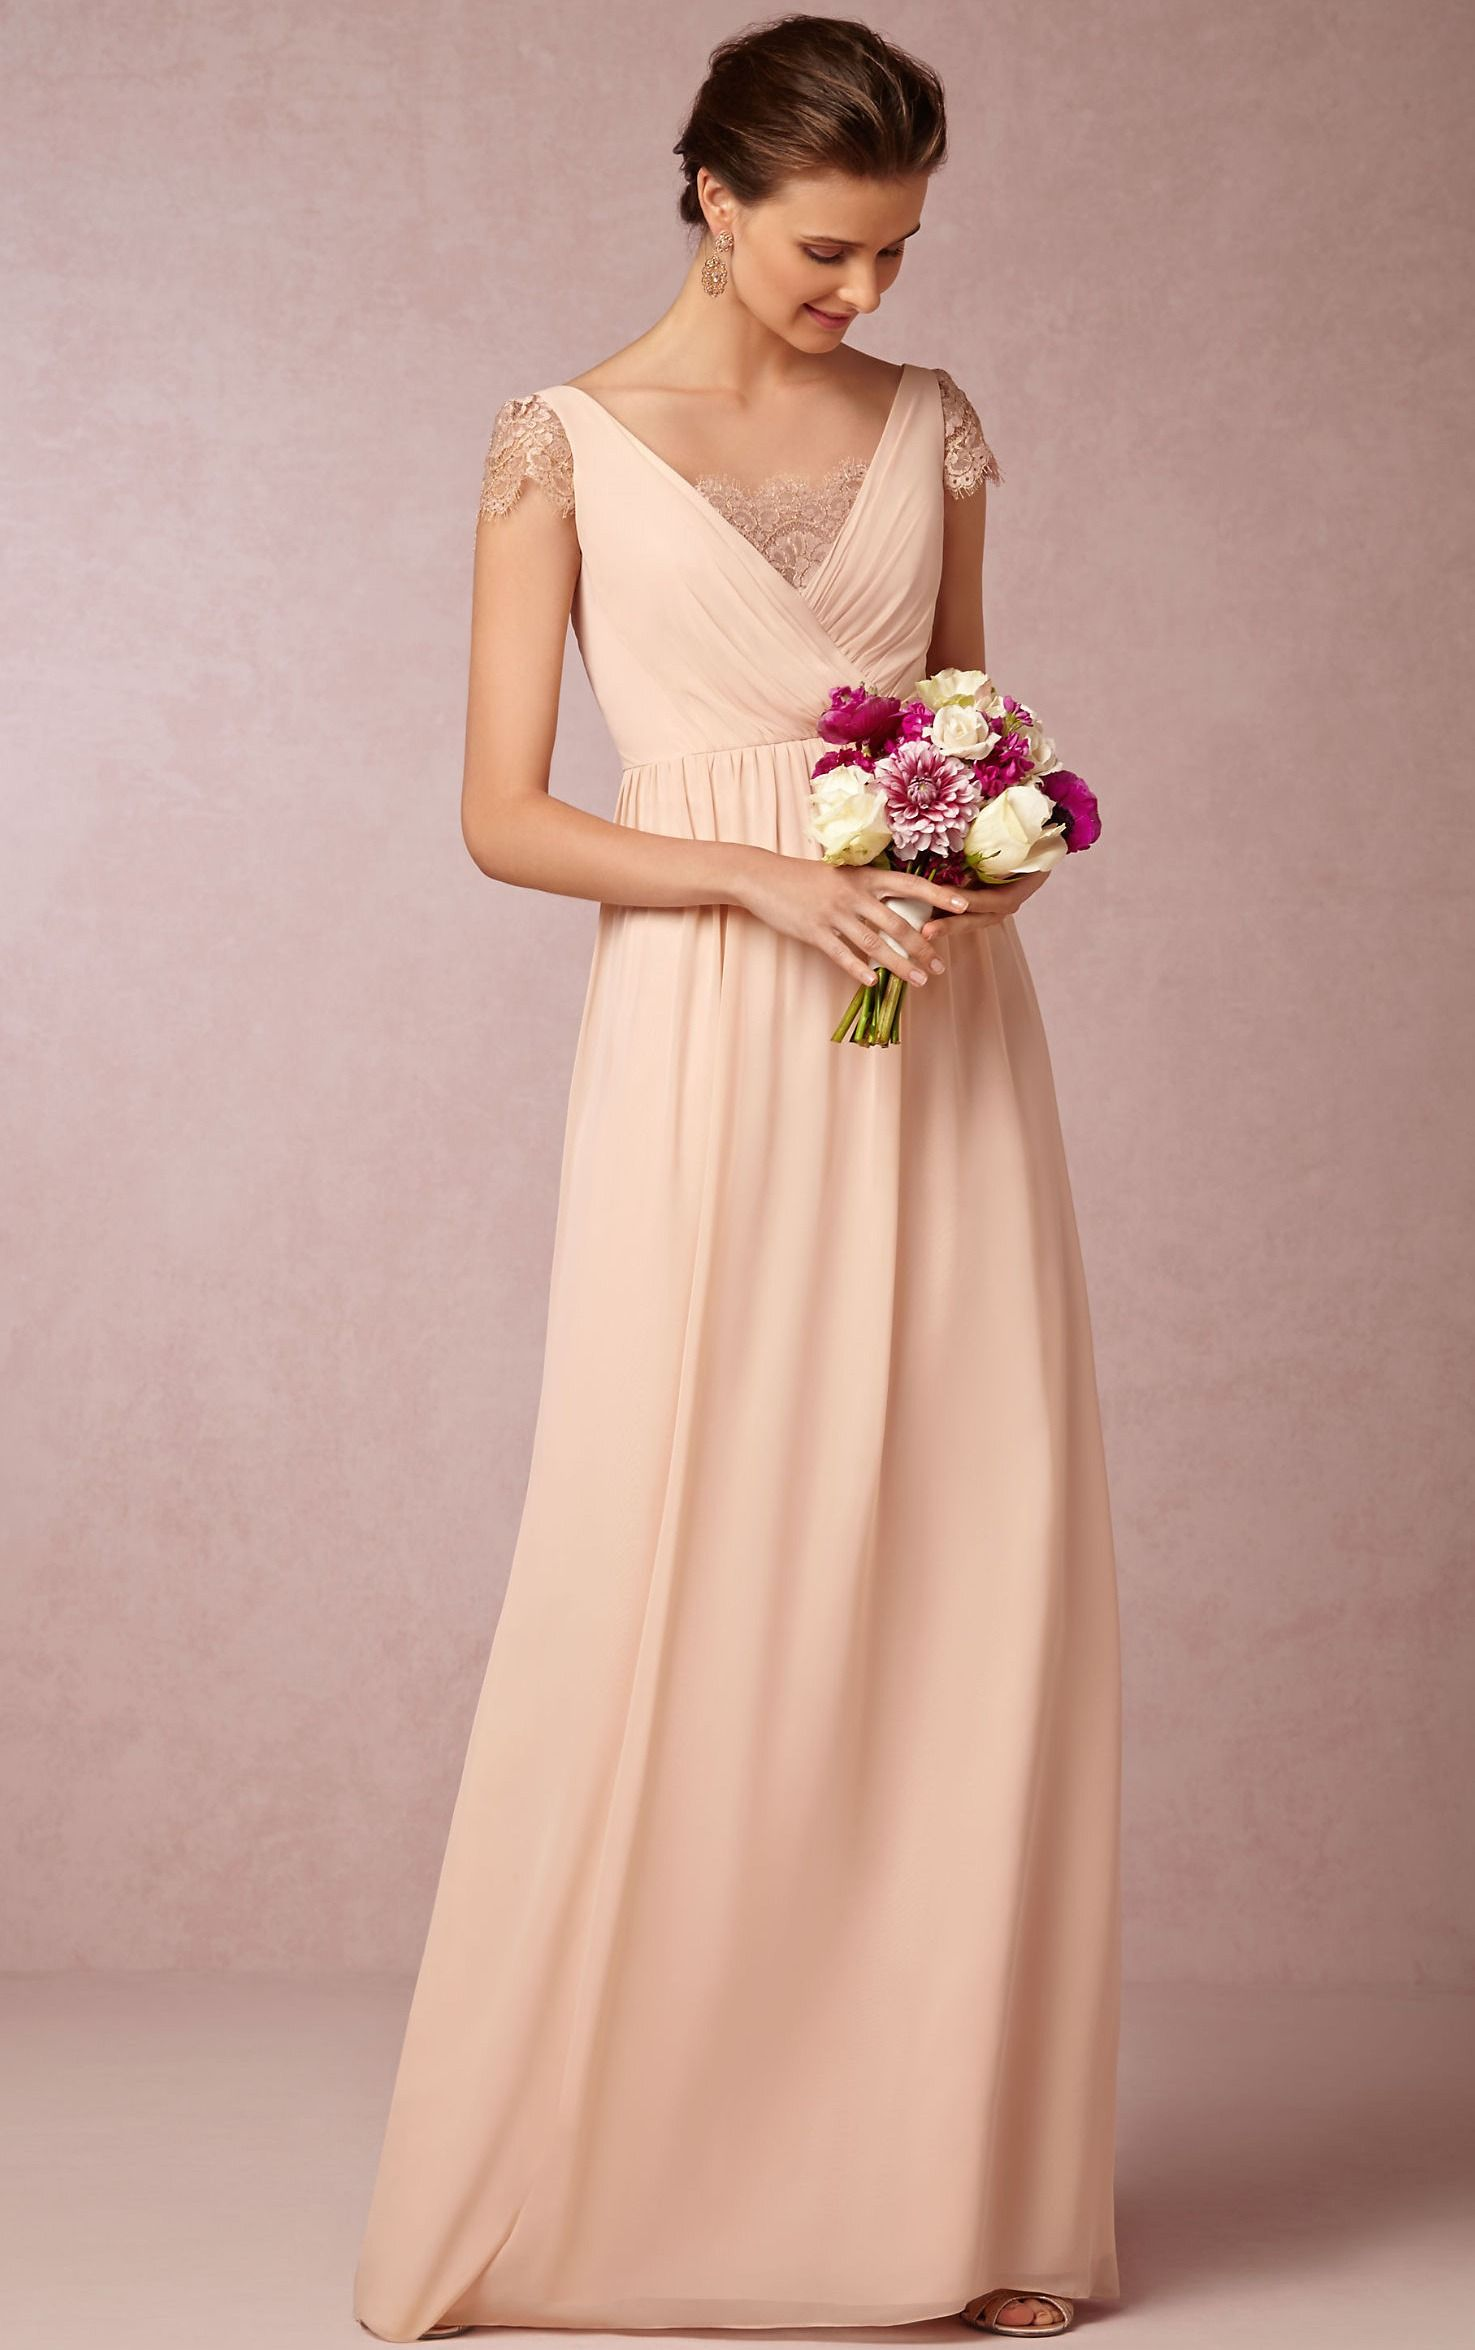 Bridesmaid dressespearl pink bridesmaid dresseszipper a line floor bridesmaid dressespearl pink bridesmaid dresseszipper a line floor length bridesmaid ombrellifo Image collections